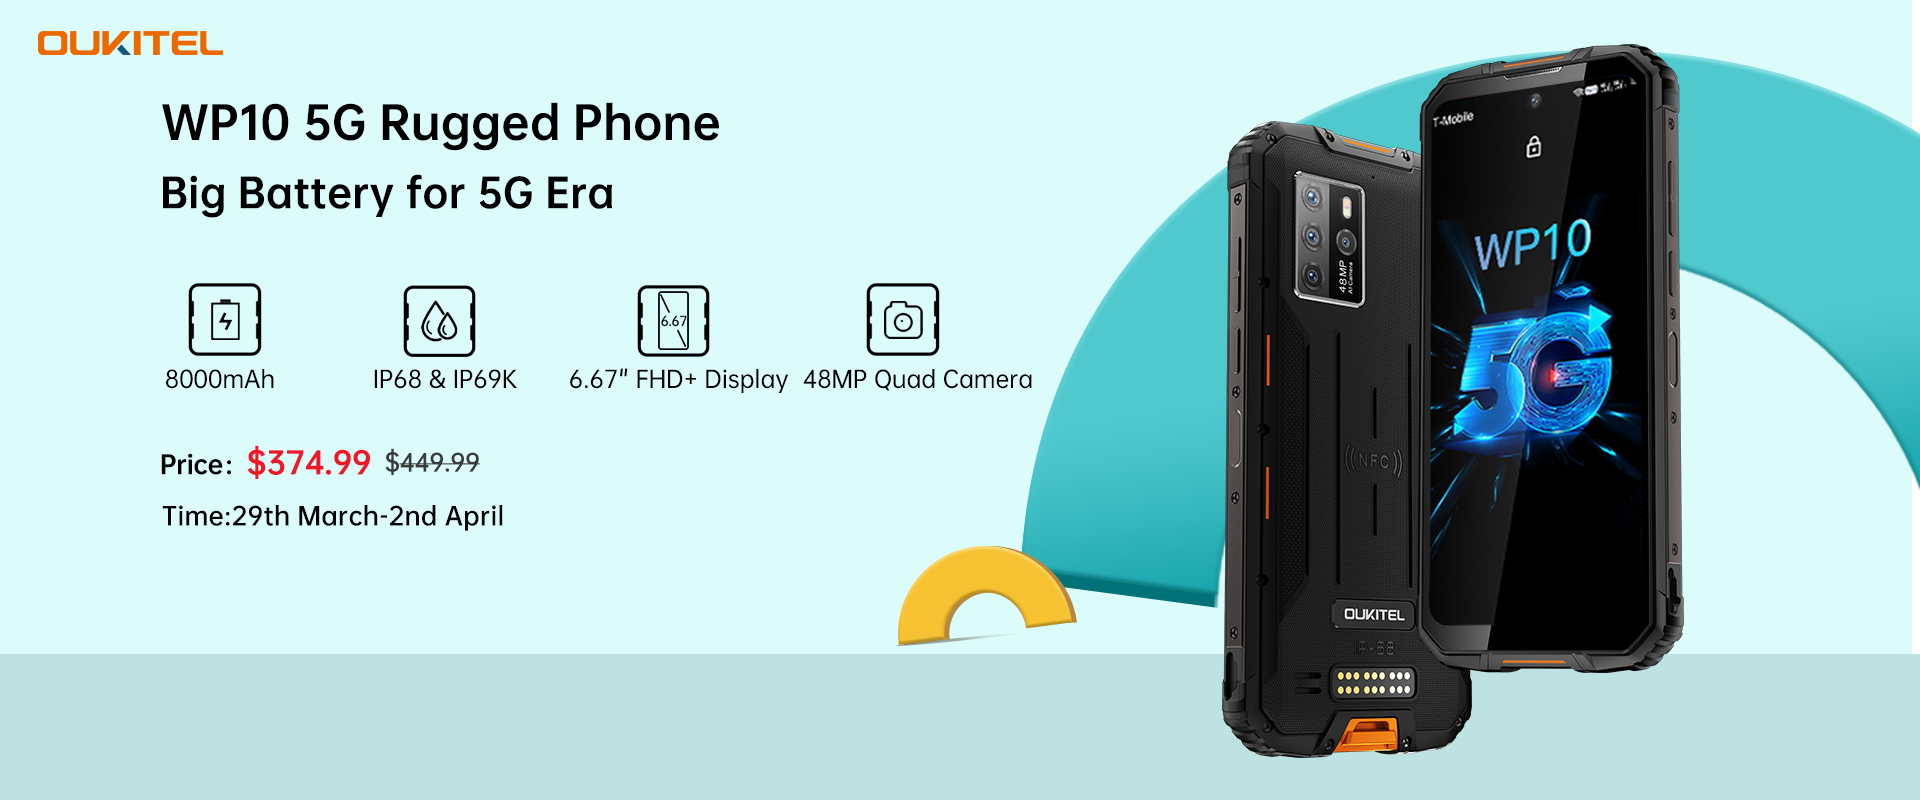 Here is your chance to get #WP10 5G Rugged Phone at the most affordable price 📣📣 During 11th Anniversary sale, the world's first 5G King Battery rugged phone, #OukitelWP10 will be available at just $374.99 only ( Regular Price: $449.99) 🎉🎉 Don't miss the chance to upgrade yourself and dive into the world of 5G🚀...